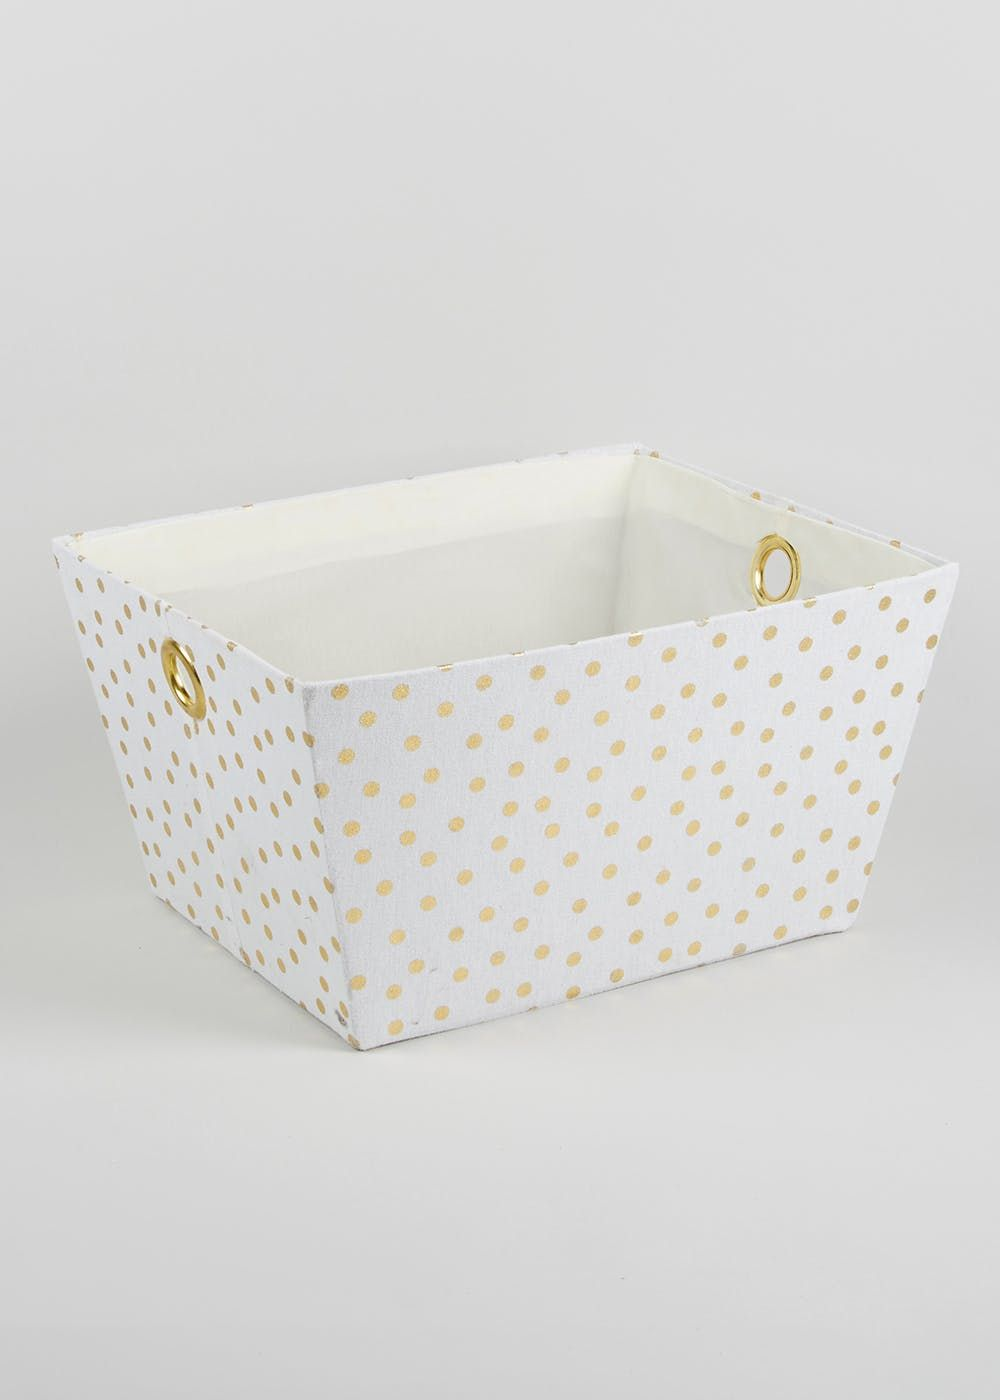 Fabric Storage Spotted Tray 43cm X 26cm X 24cm Bedroom Fabric